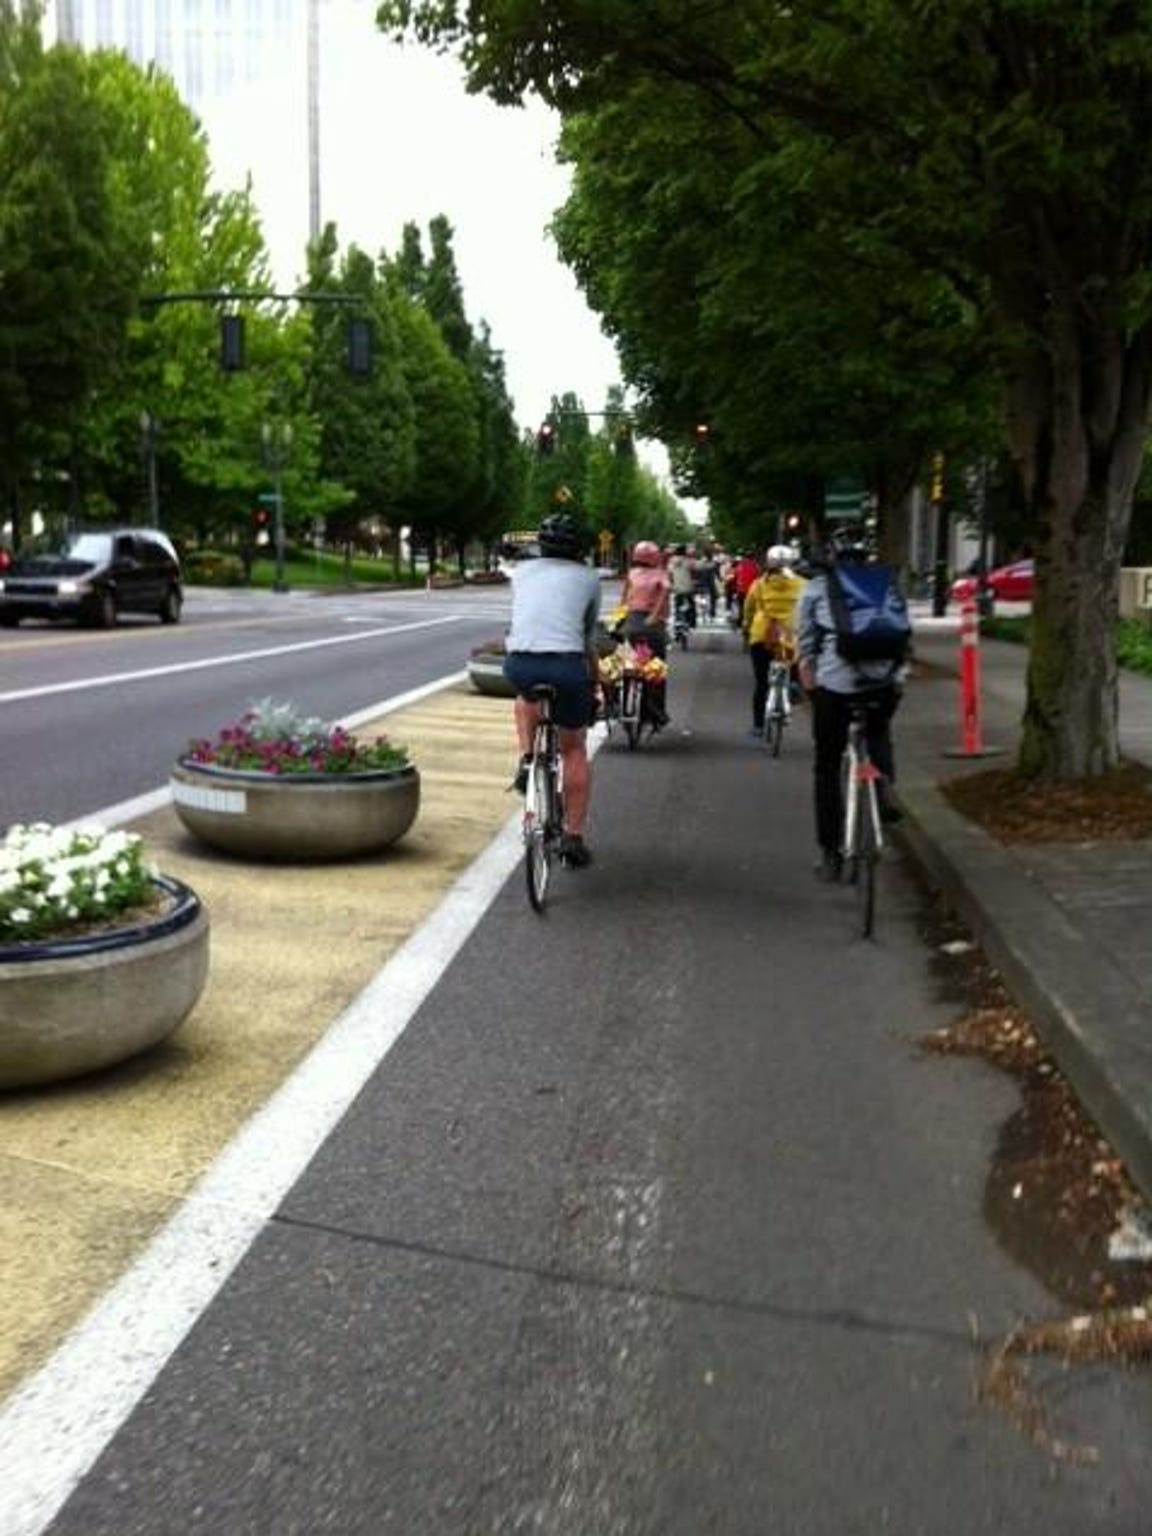 Portland tries to make biking on the roads more comfortable